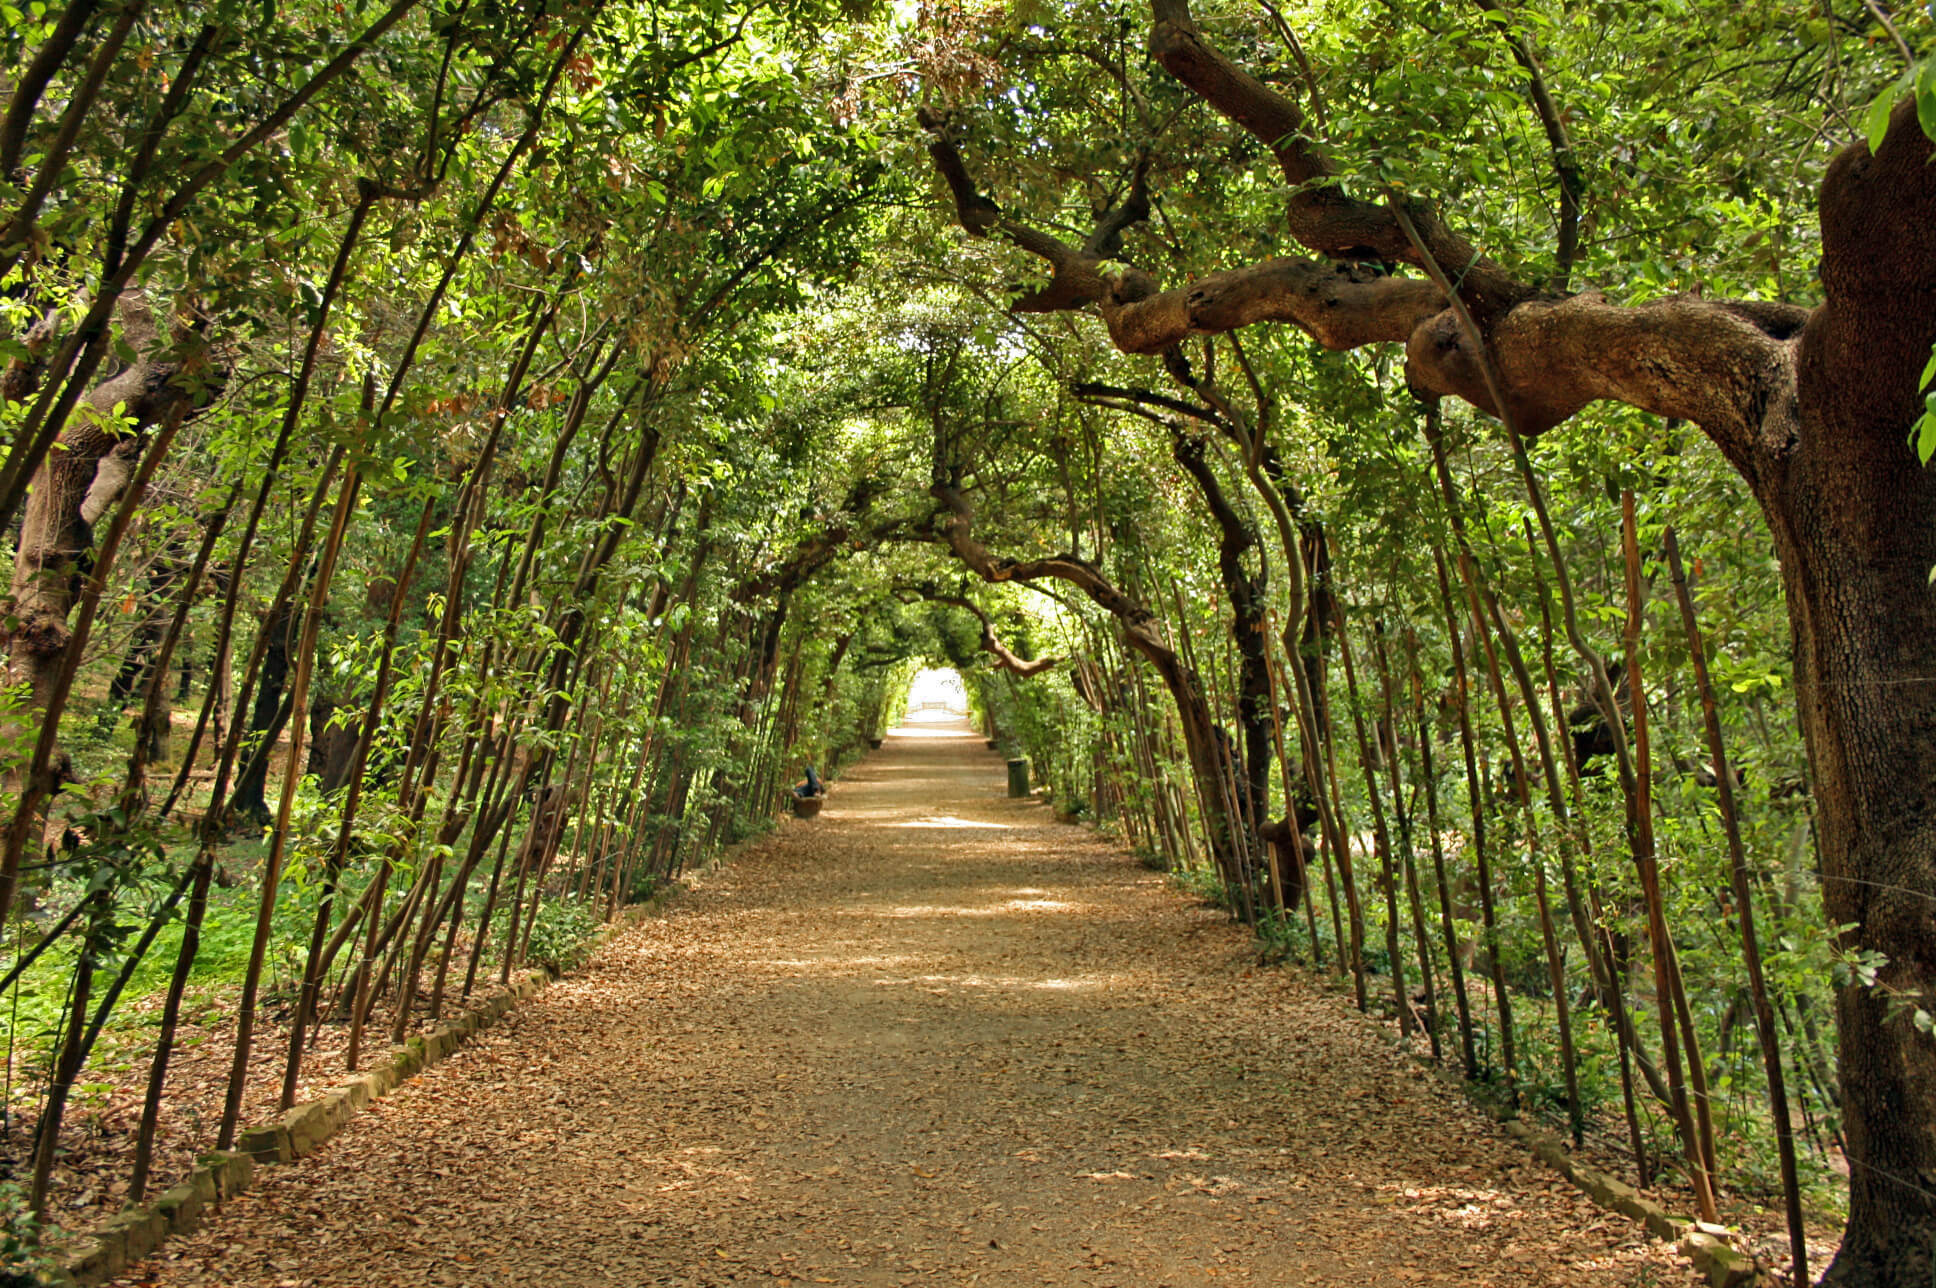 the trees form a sort of gallery inside the Giardini di Boboli, in Florence